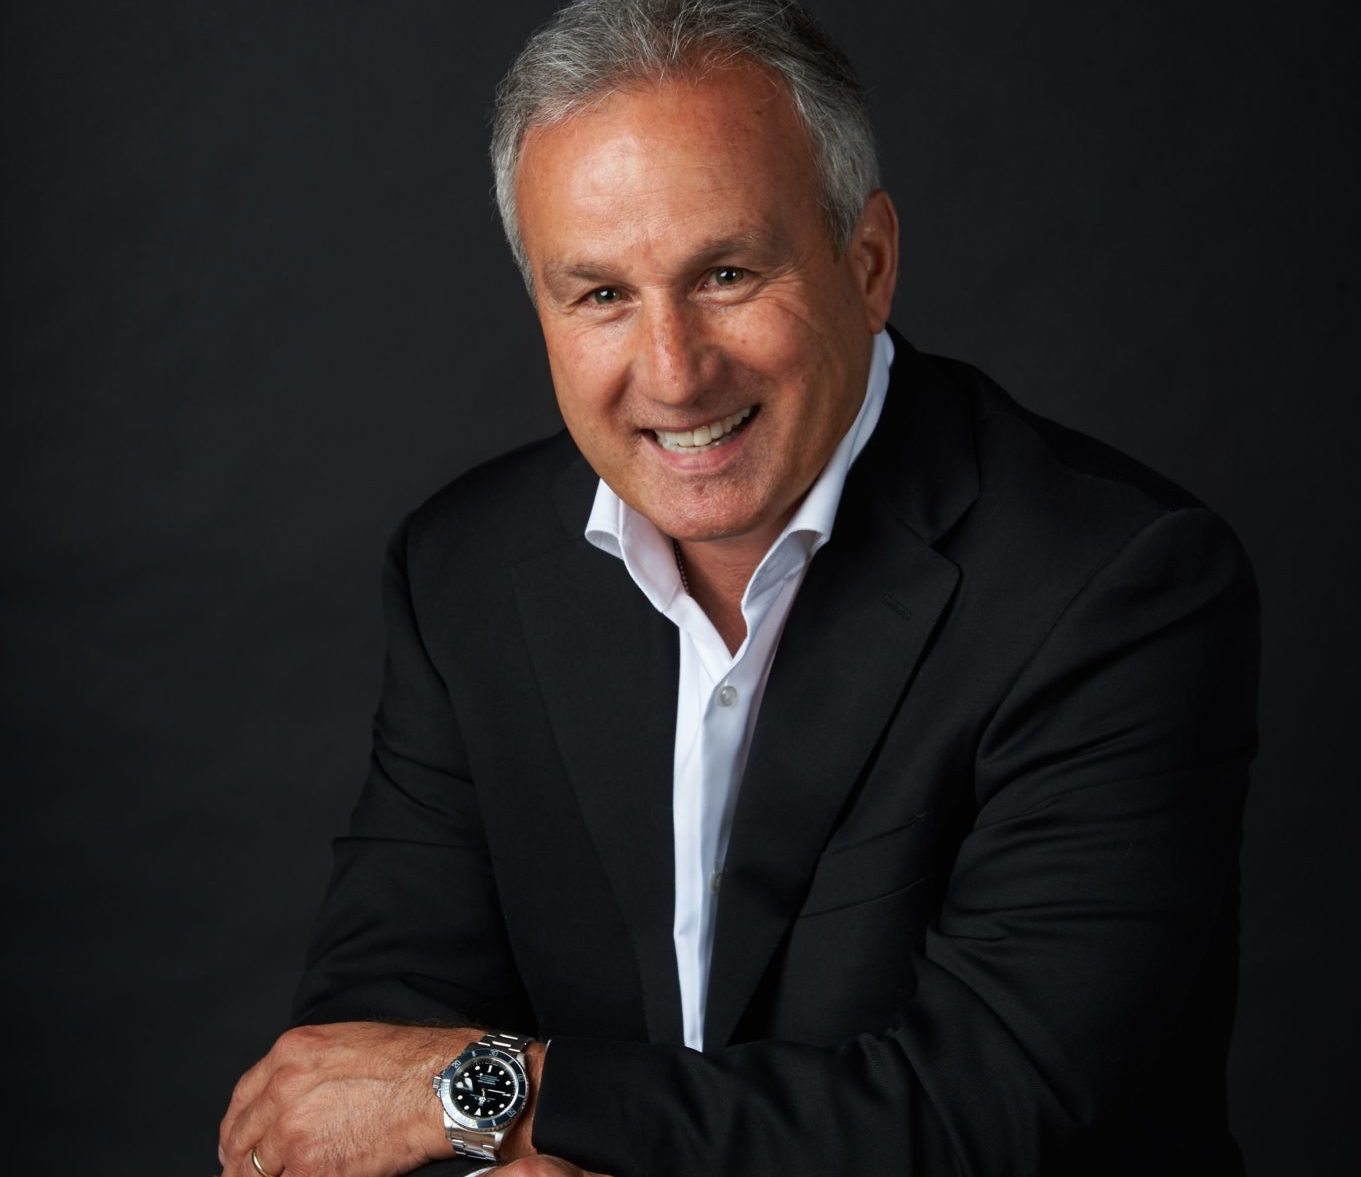 Paul Altieri of Bob's Watches Portrait Session for Robb Report, Los Angeles, USA – 20 Apr 2017